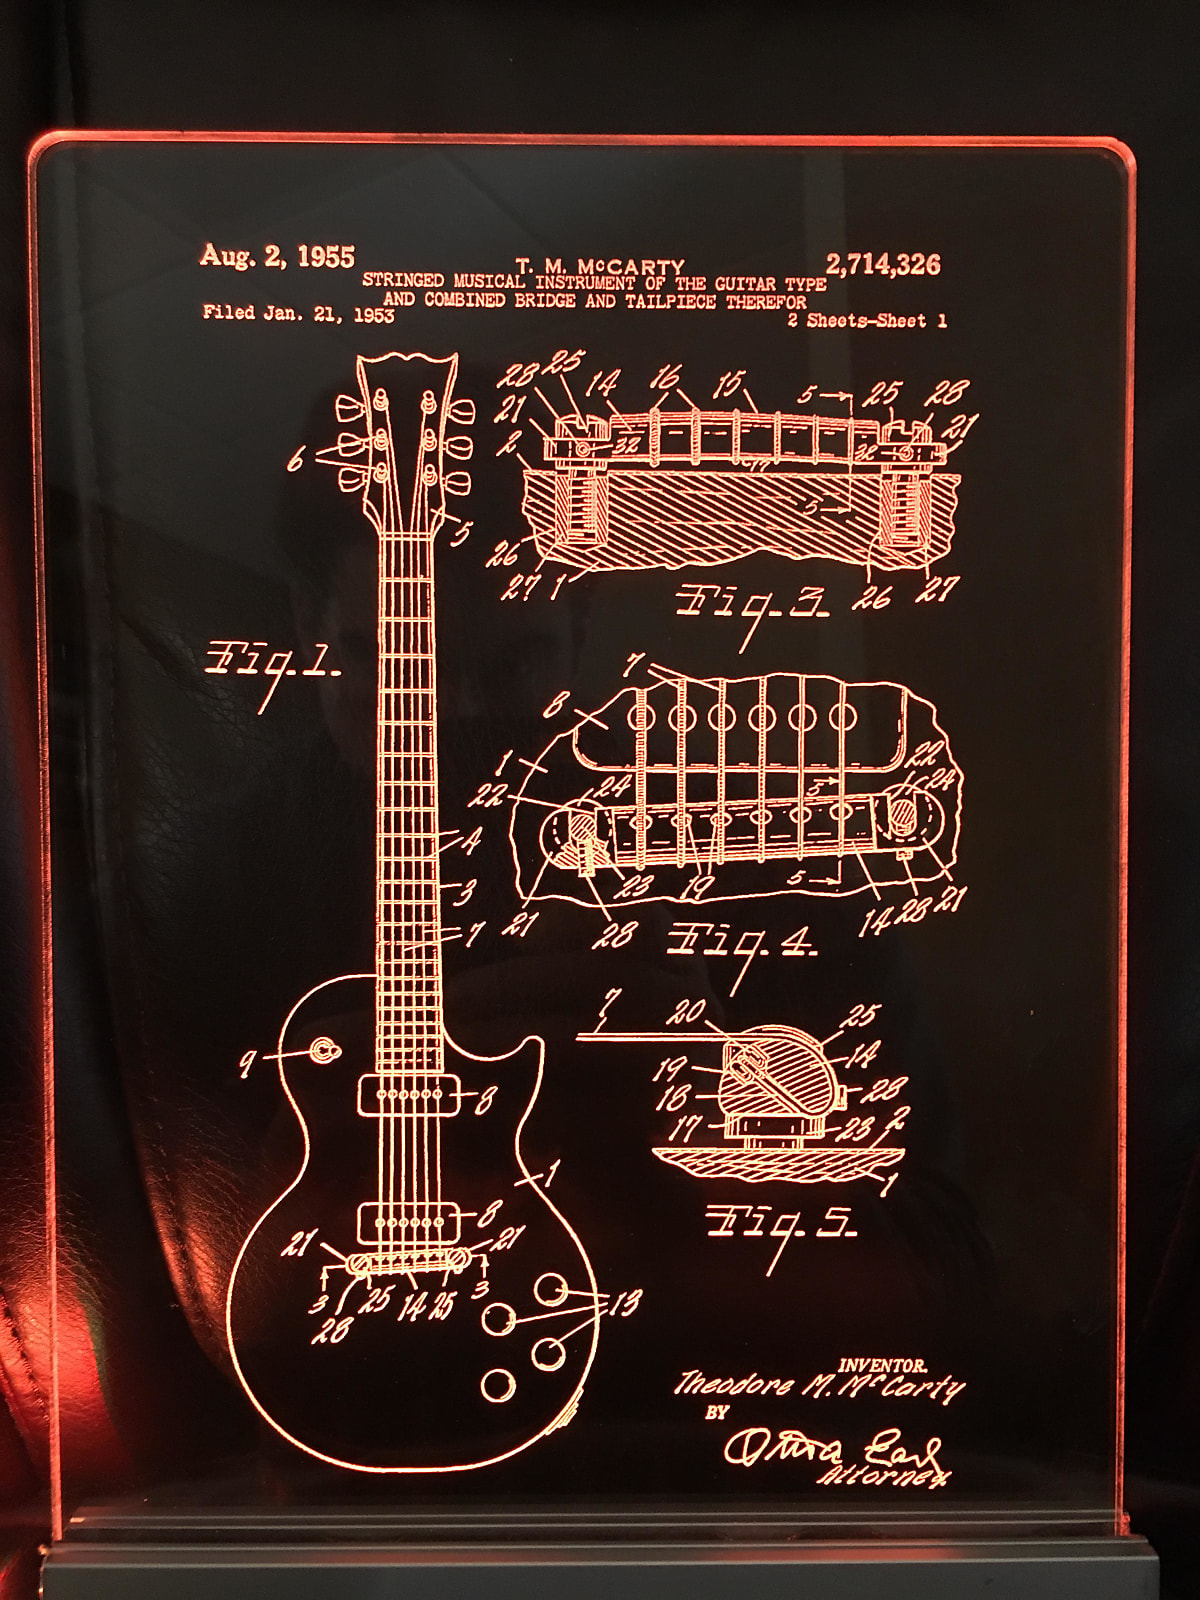 Gibson Les Paul Guitar Patent, Edge Lit Acrylic LED Sign Display, Laser  Engraved